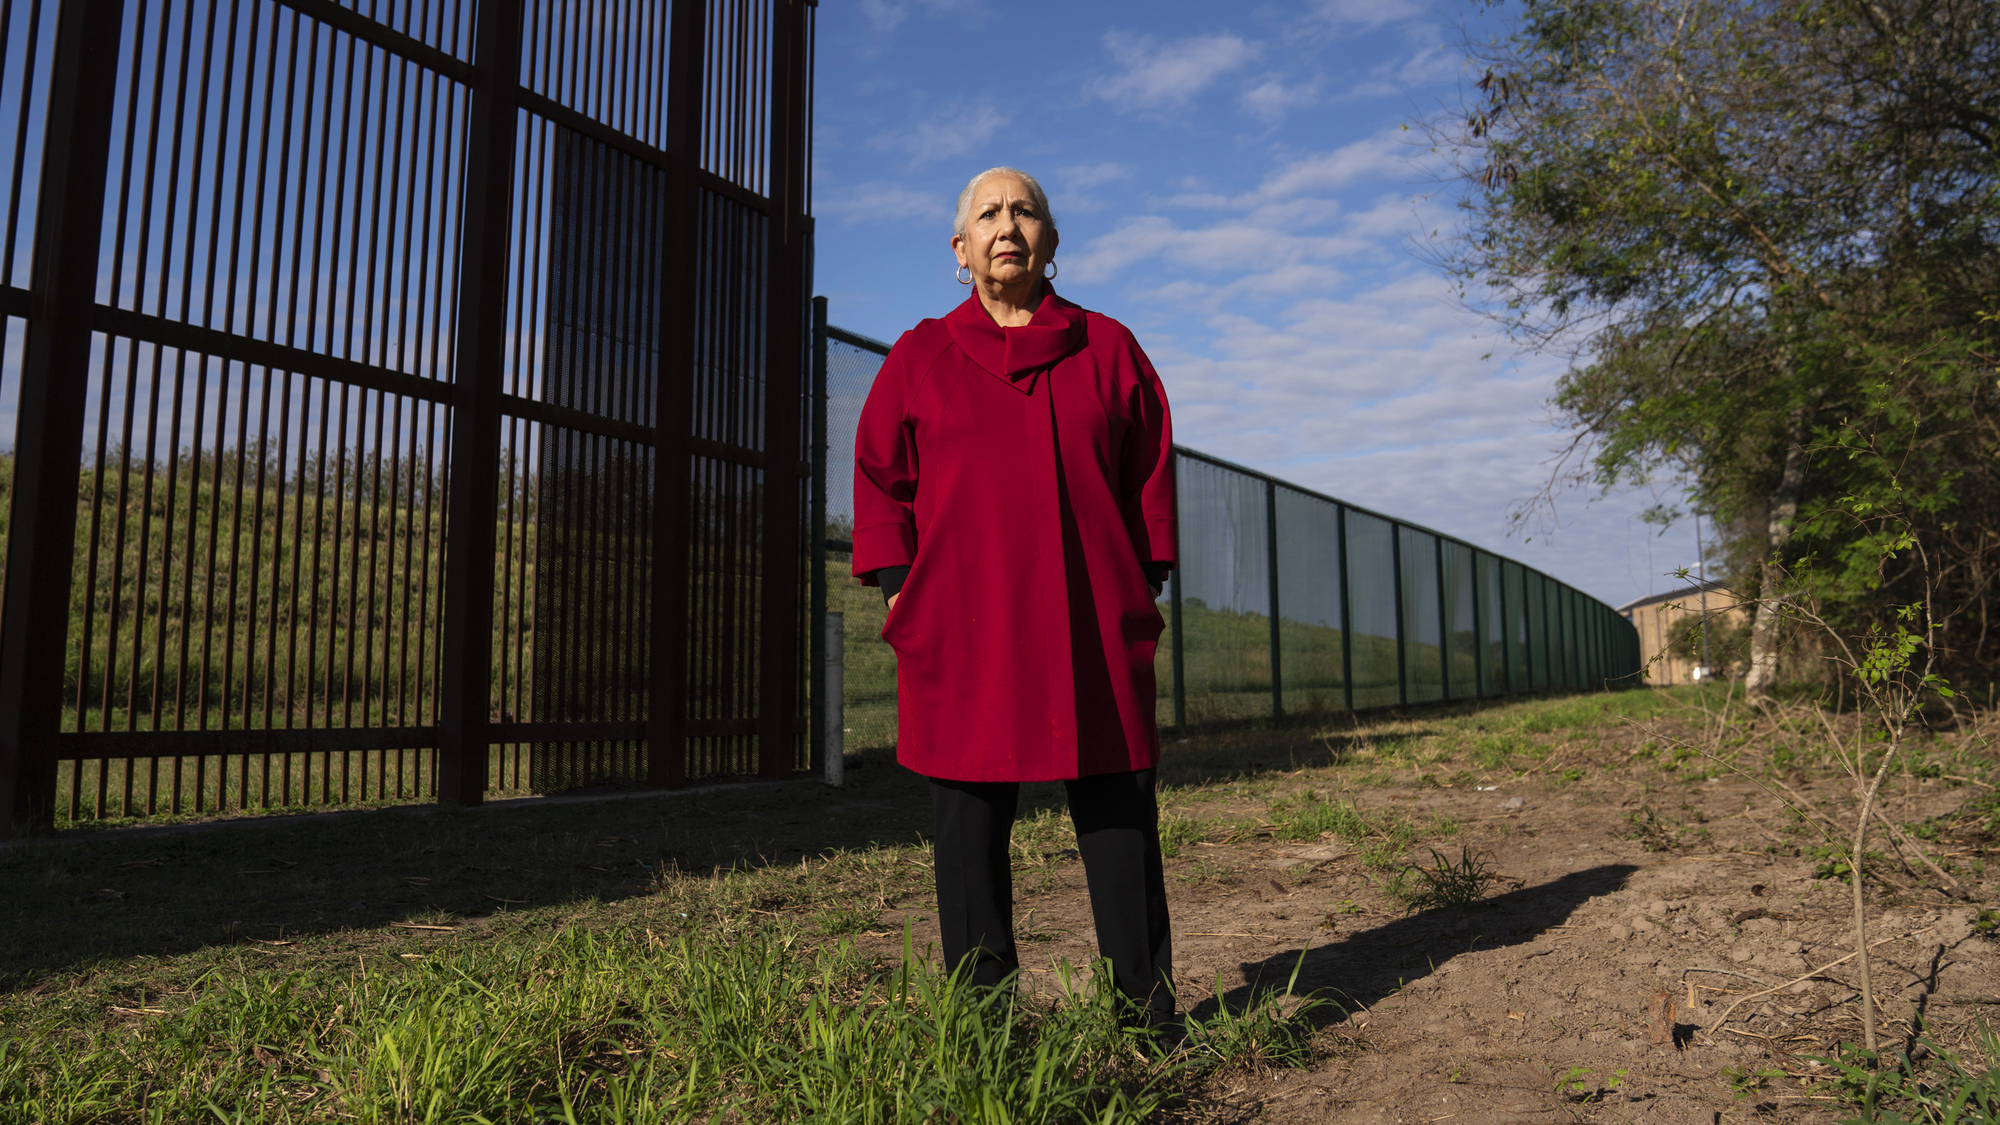 Between President Trump's border wall and the Rio Grande lies a 'no man's land'